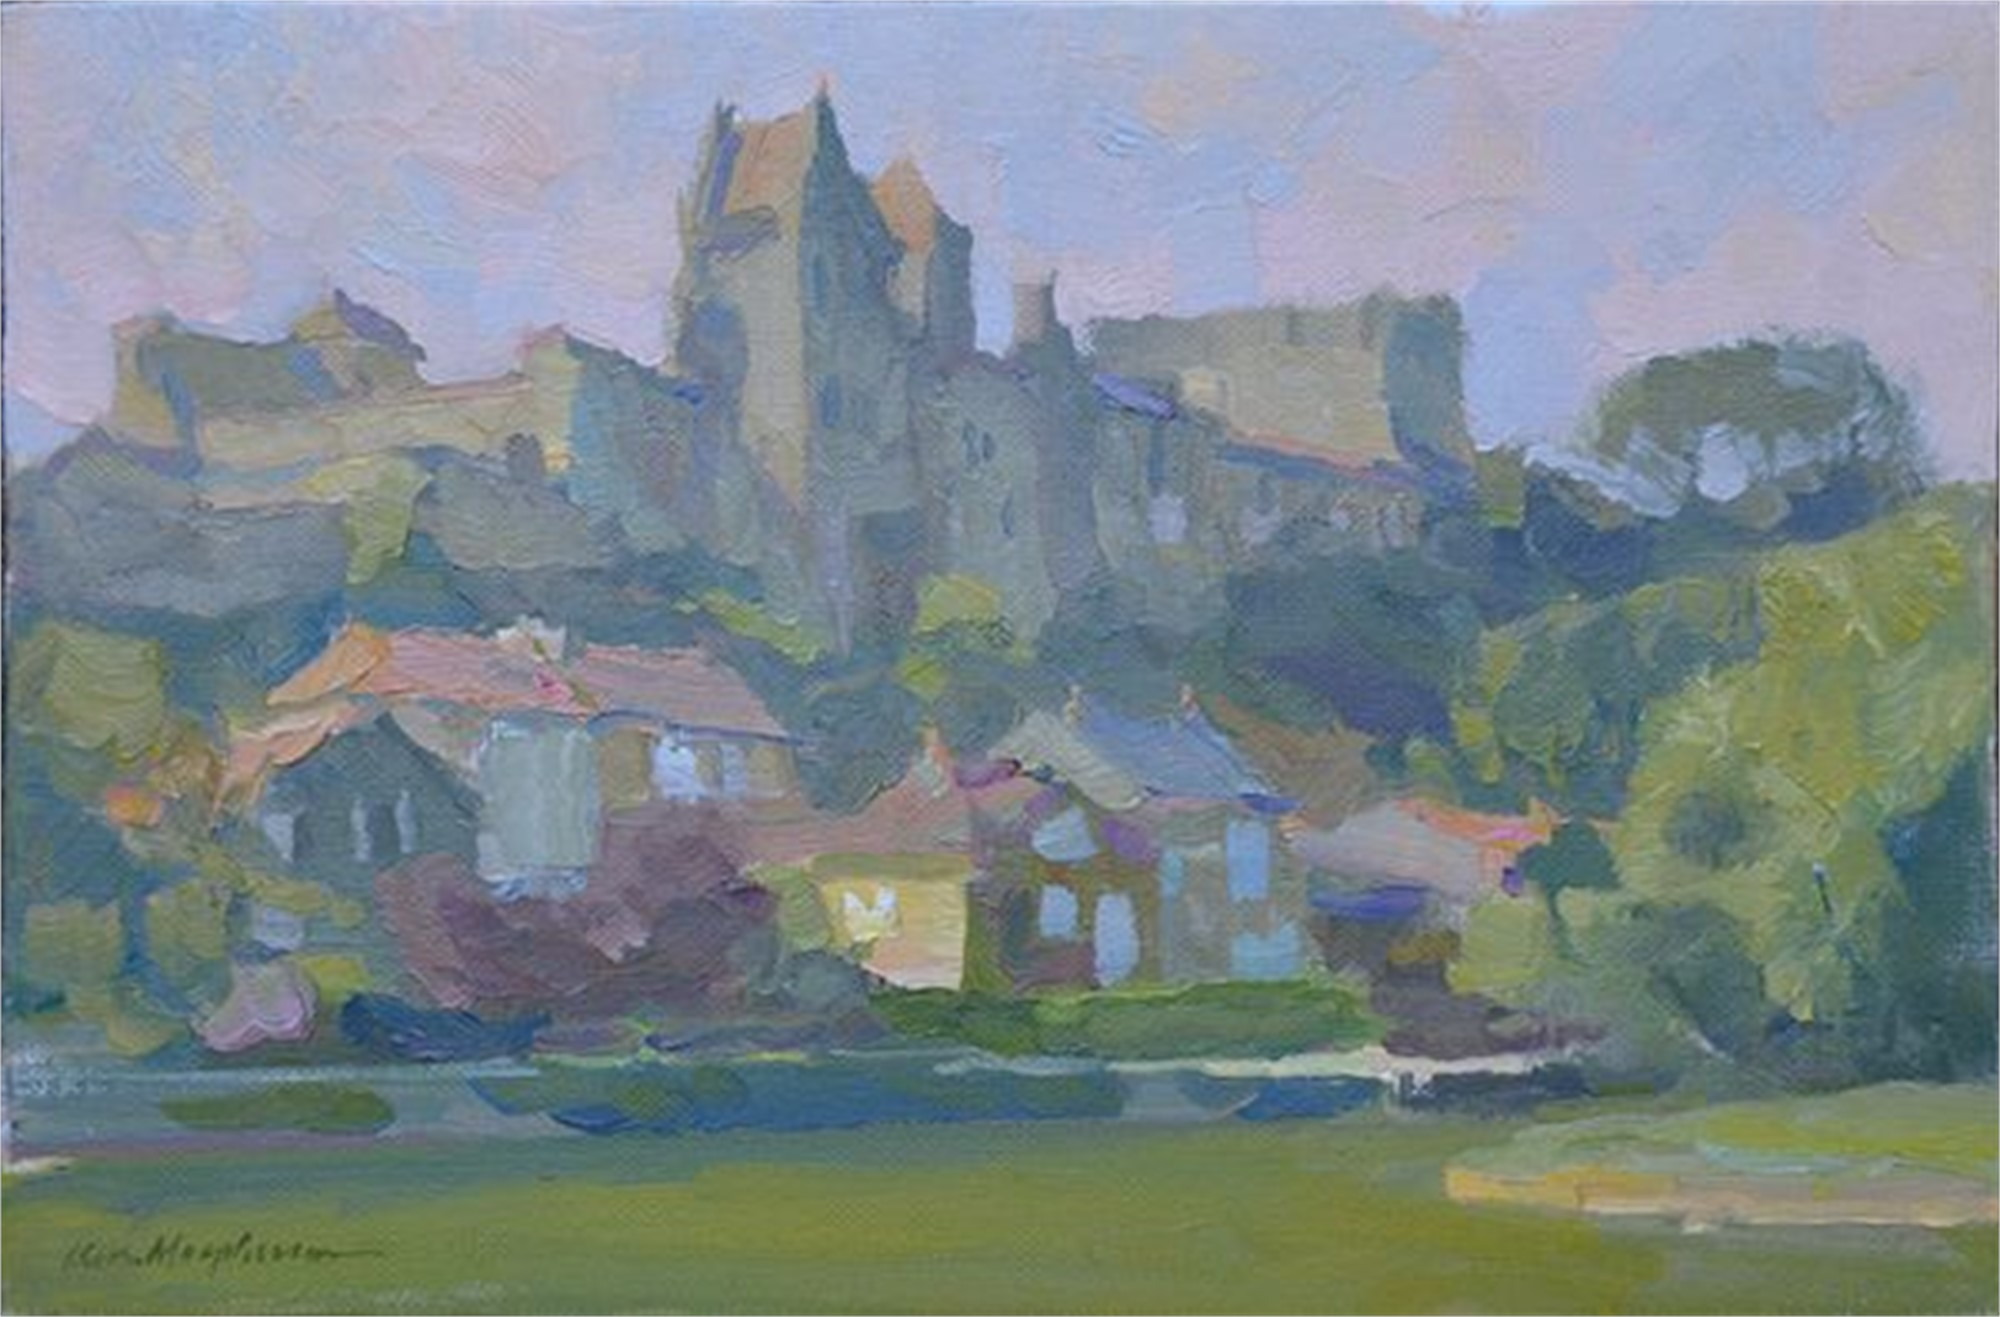 Castle Ruins by Kevin Macpherson